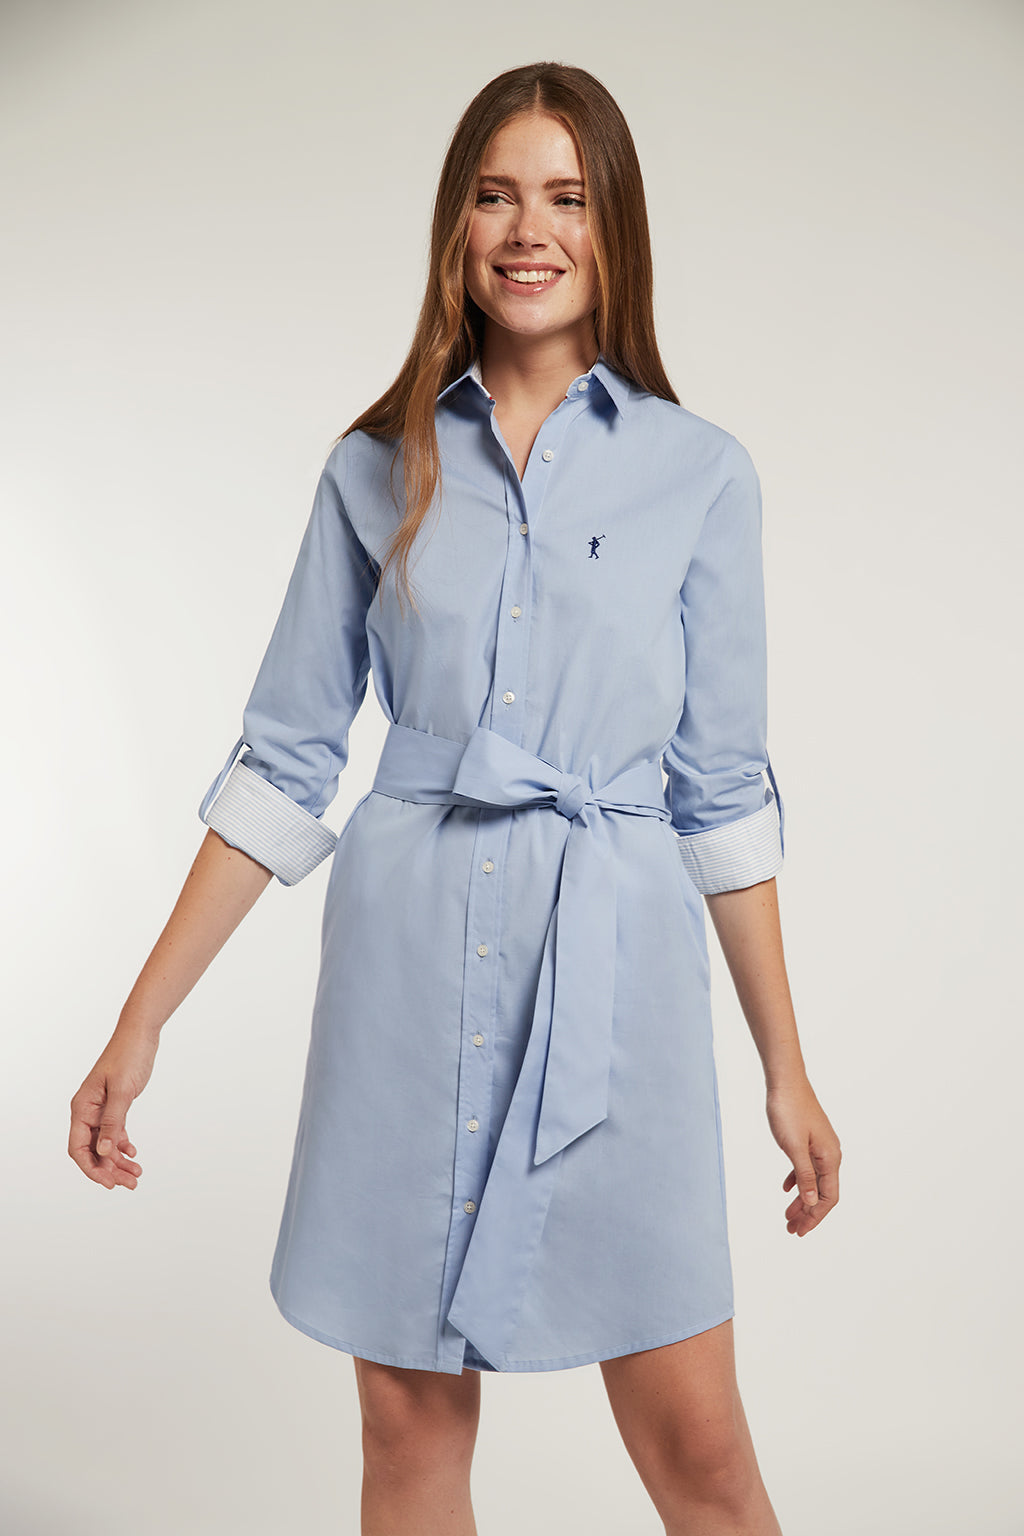 Sky blue shirtdress in elastic cotton